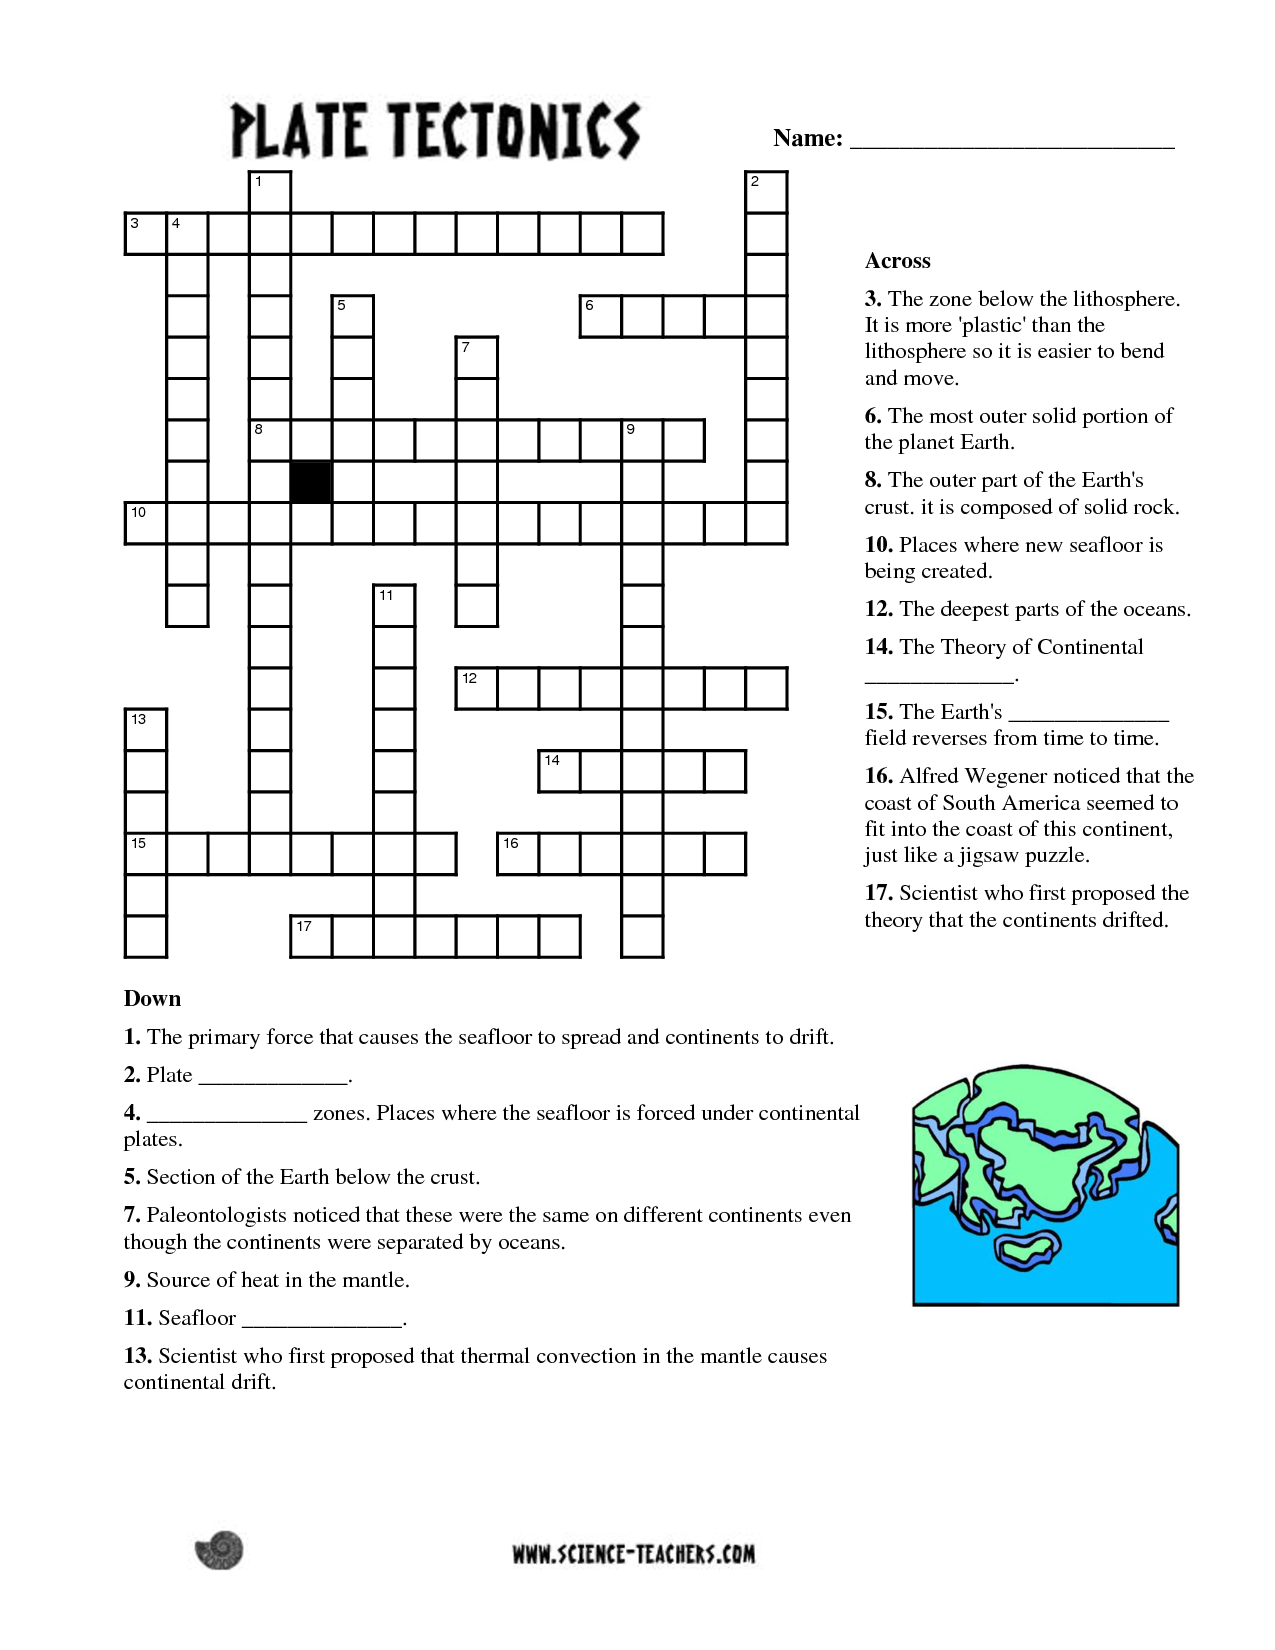 Planets Crossword Puzzle Worksheet - Pics About Space | Fun Science - Printable Puzzle South America